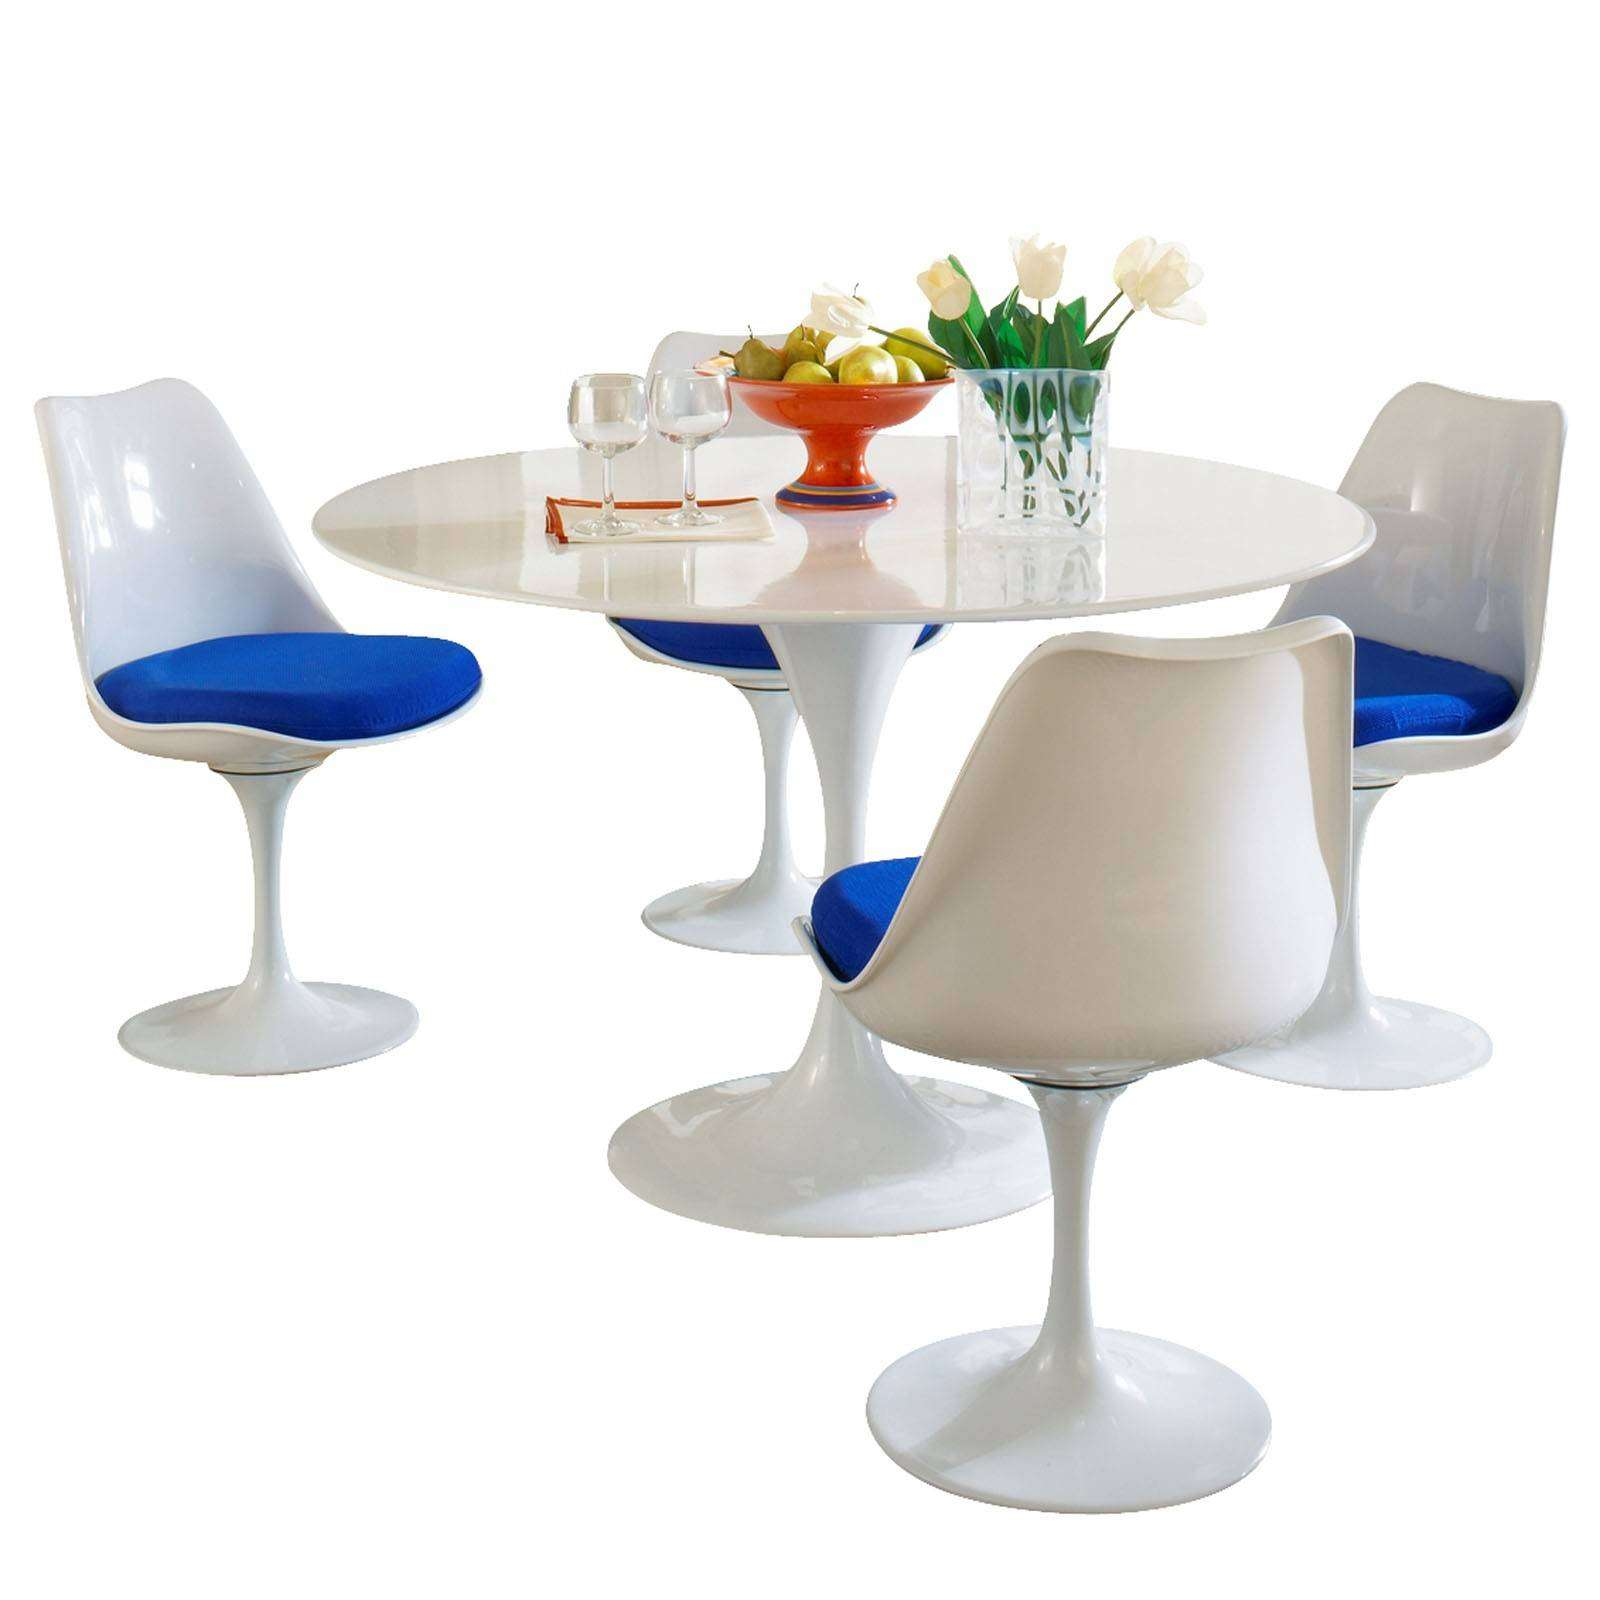 Eero saarinen style tulip dining set for Tulip dining table